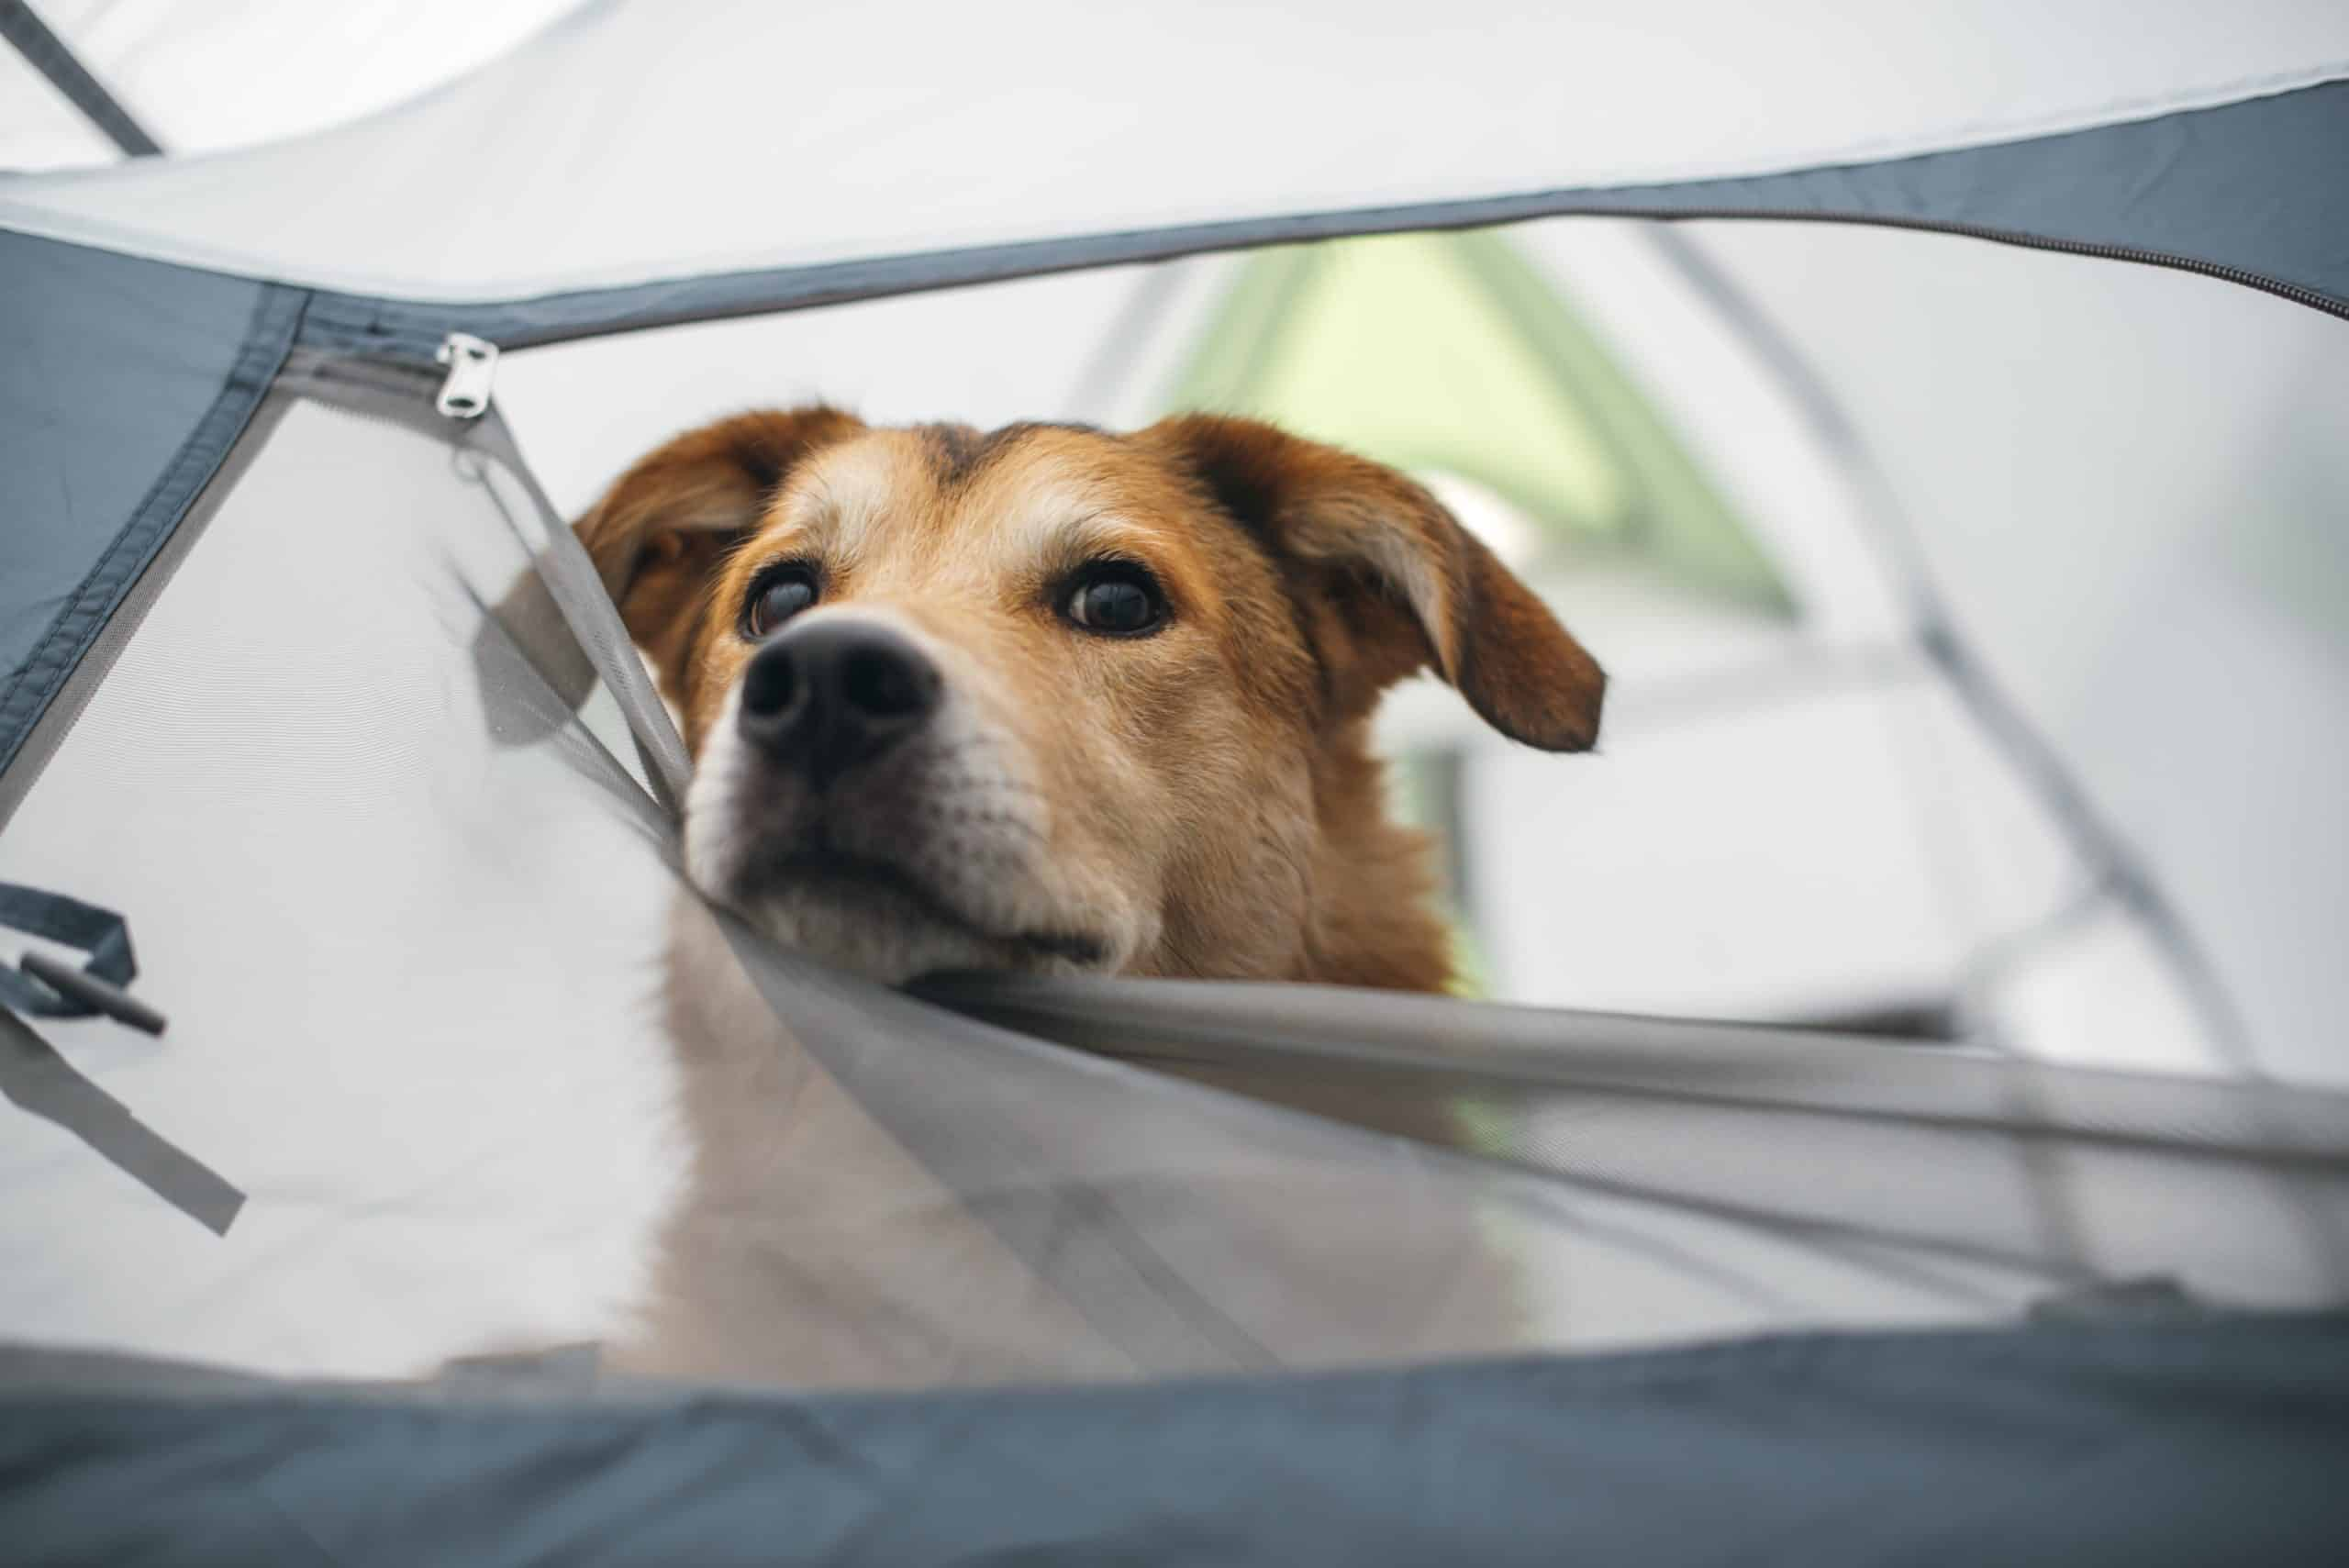 Dog peeks out through tent flap.